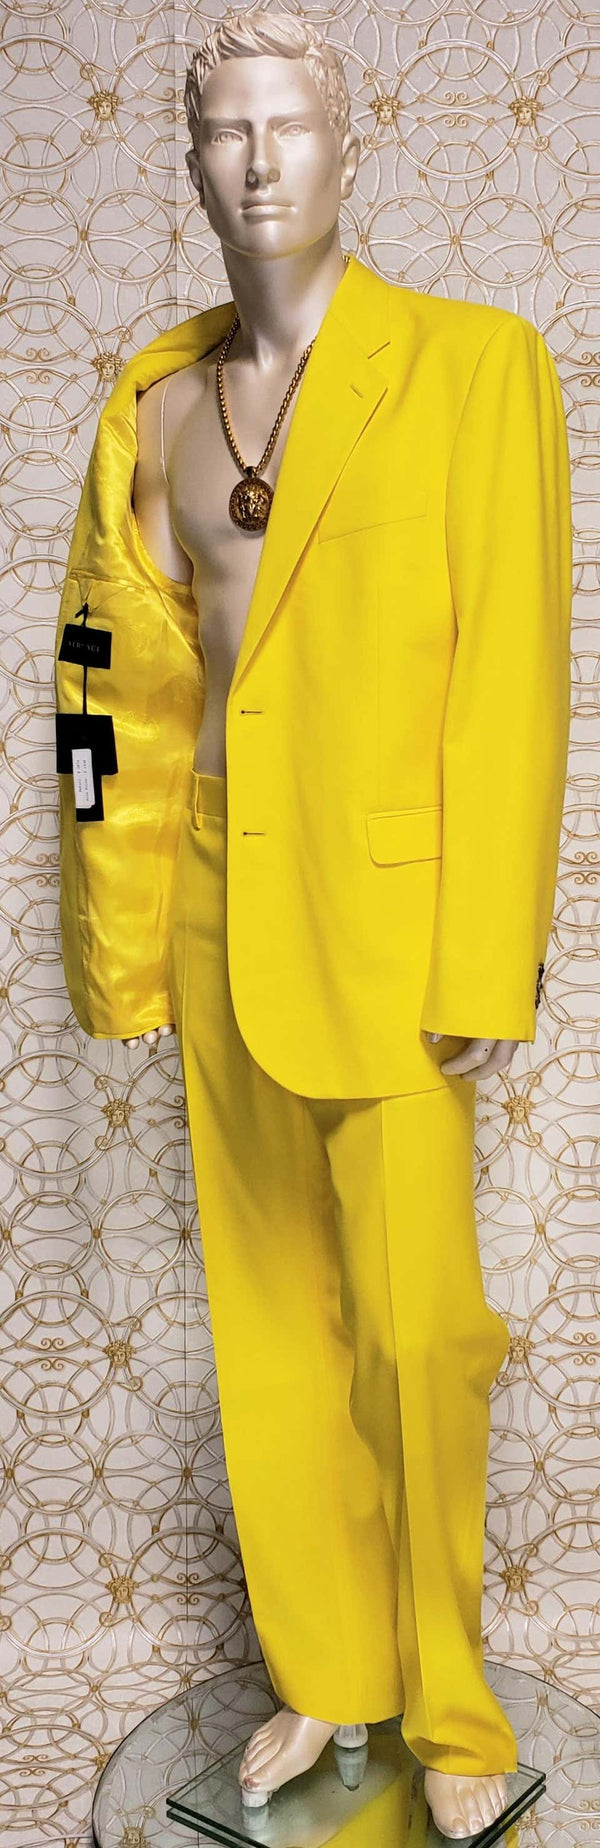 VERSACE YELLOW TAILOR MADE 2 piece SUIT